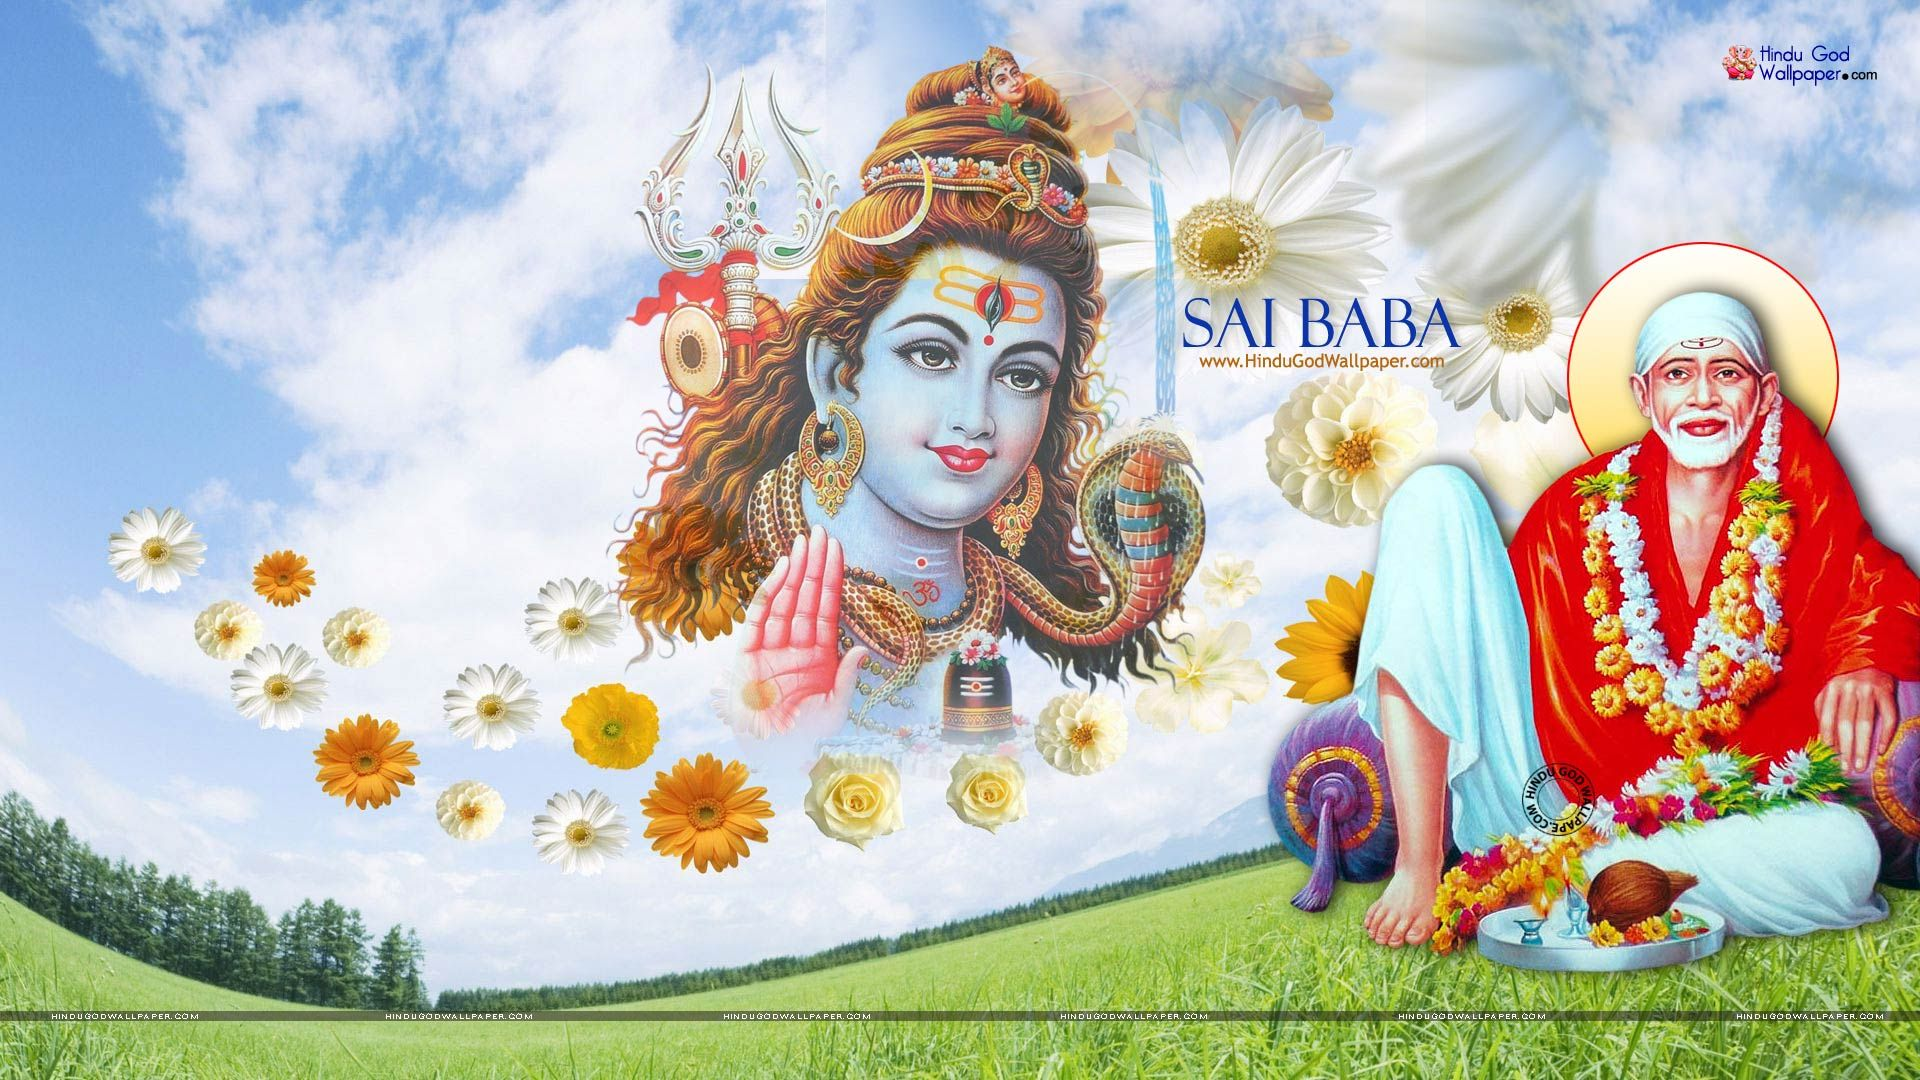 Sai Baba Hd Wallpaper 1080p Full Size Free Download Wallpaper